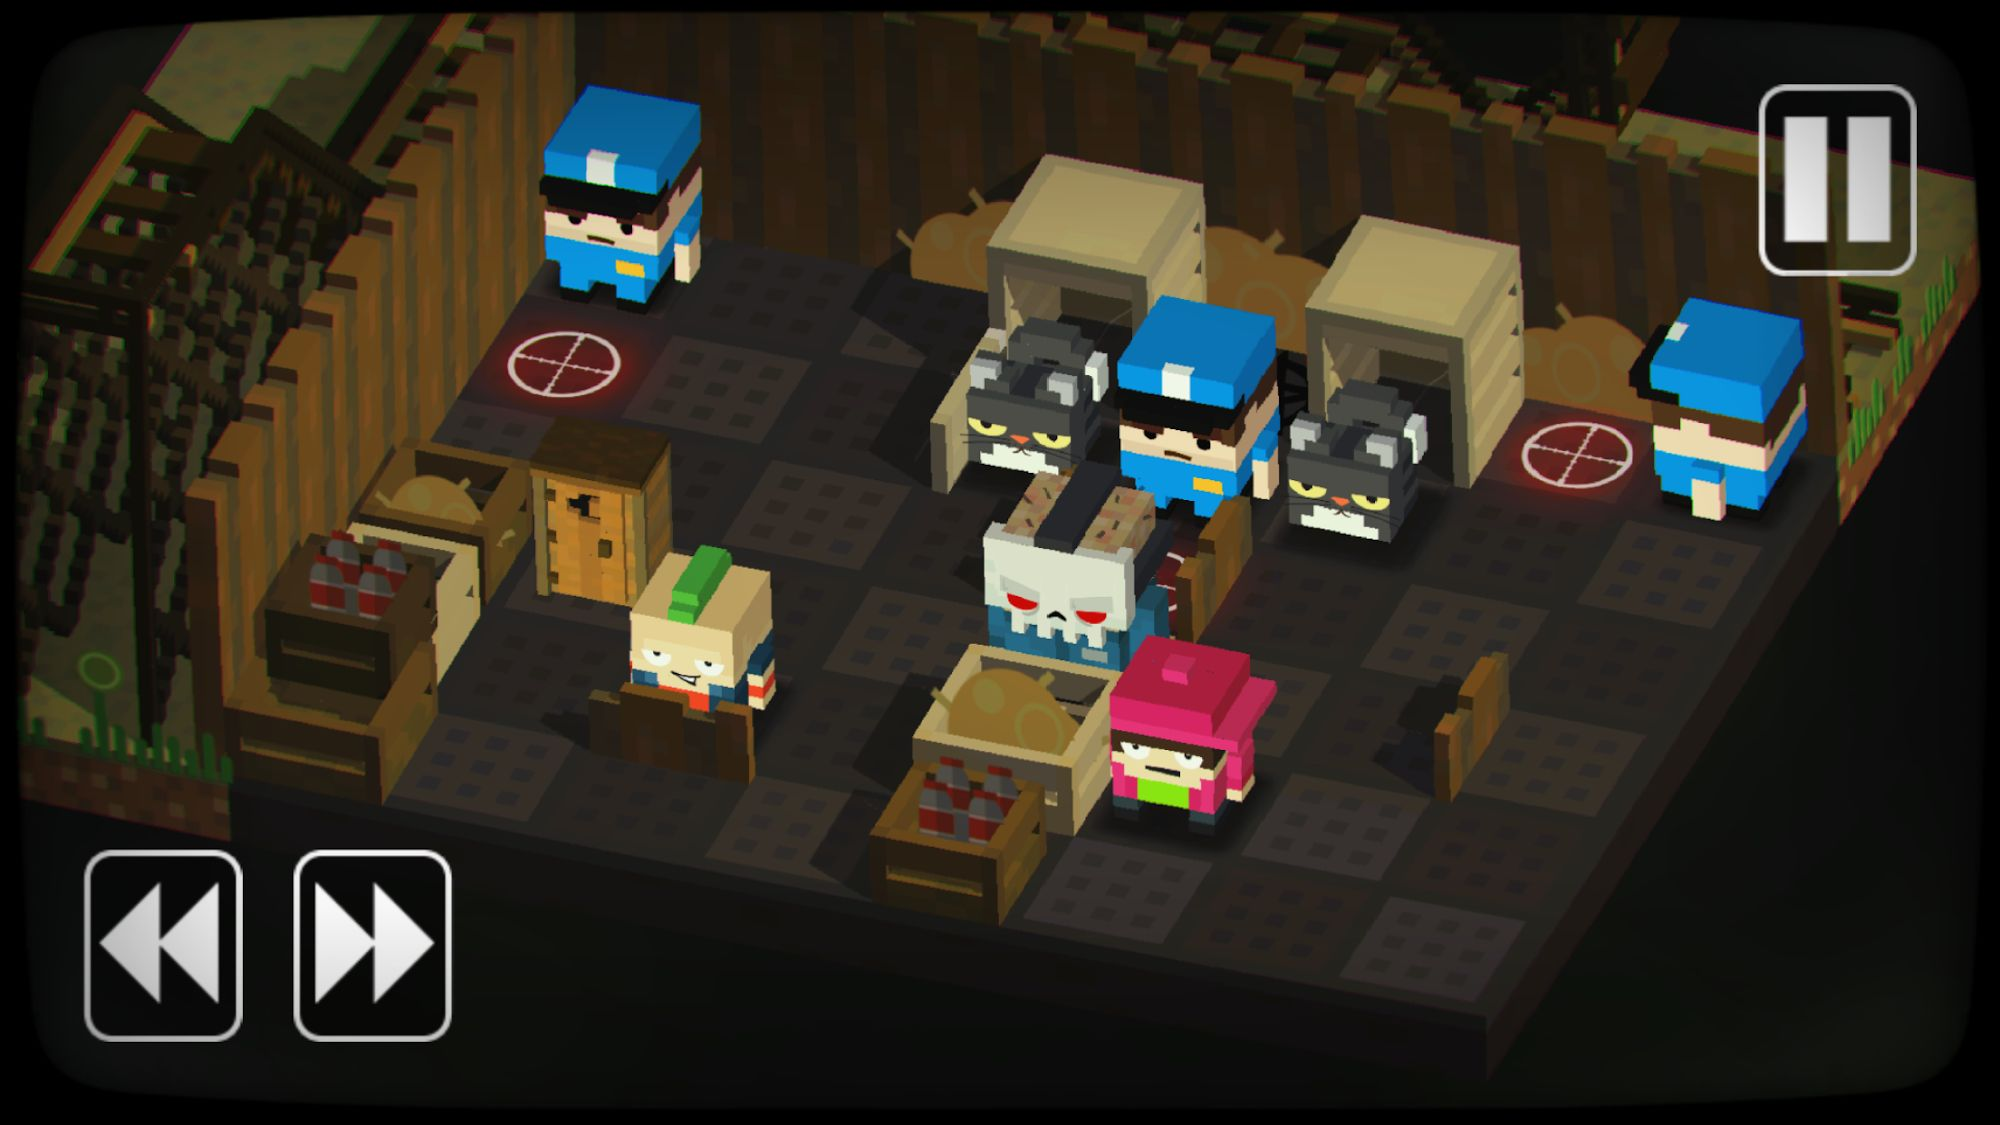 Slayaway Camp: Free 2 Slay for Android